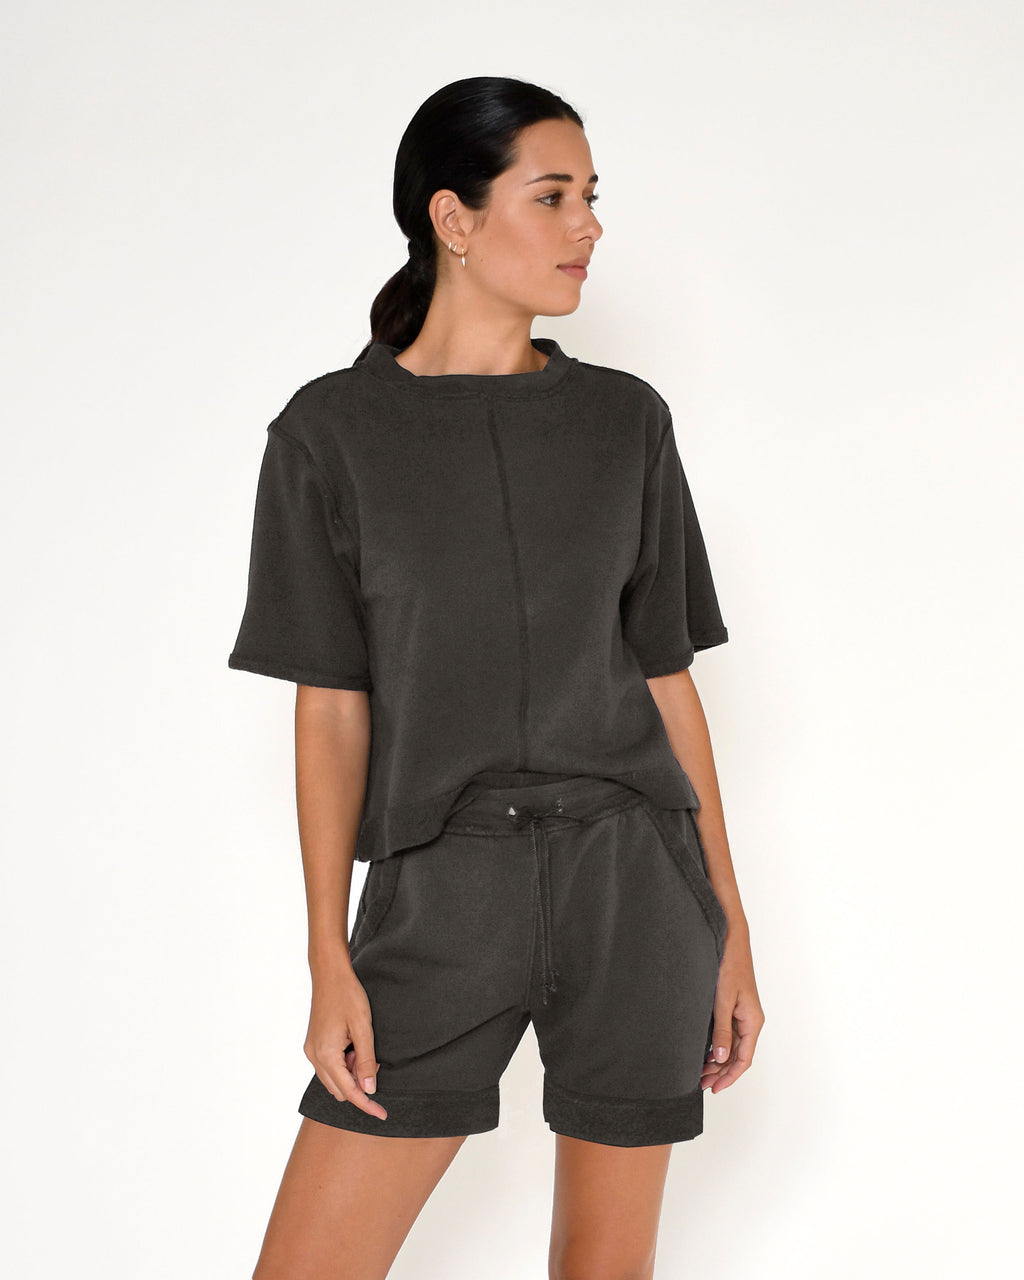 CT18801 - TERRY SHORT SLEEVE TOP - tops - knitwear - This terry short sleeve top is designed in the perfect relaxed fit in a cool slate gray. Add 1 line break Stylist Tip: Pair with the matching shorts for a cool beach cover up.